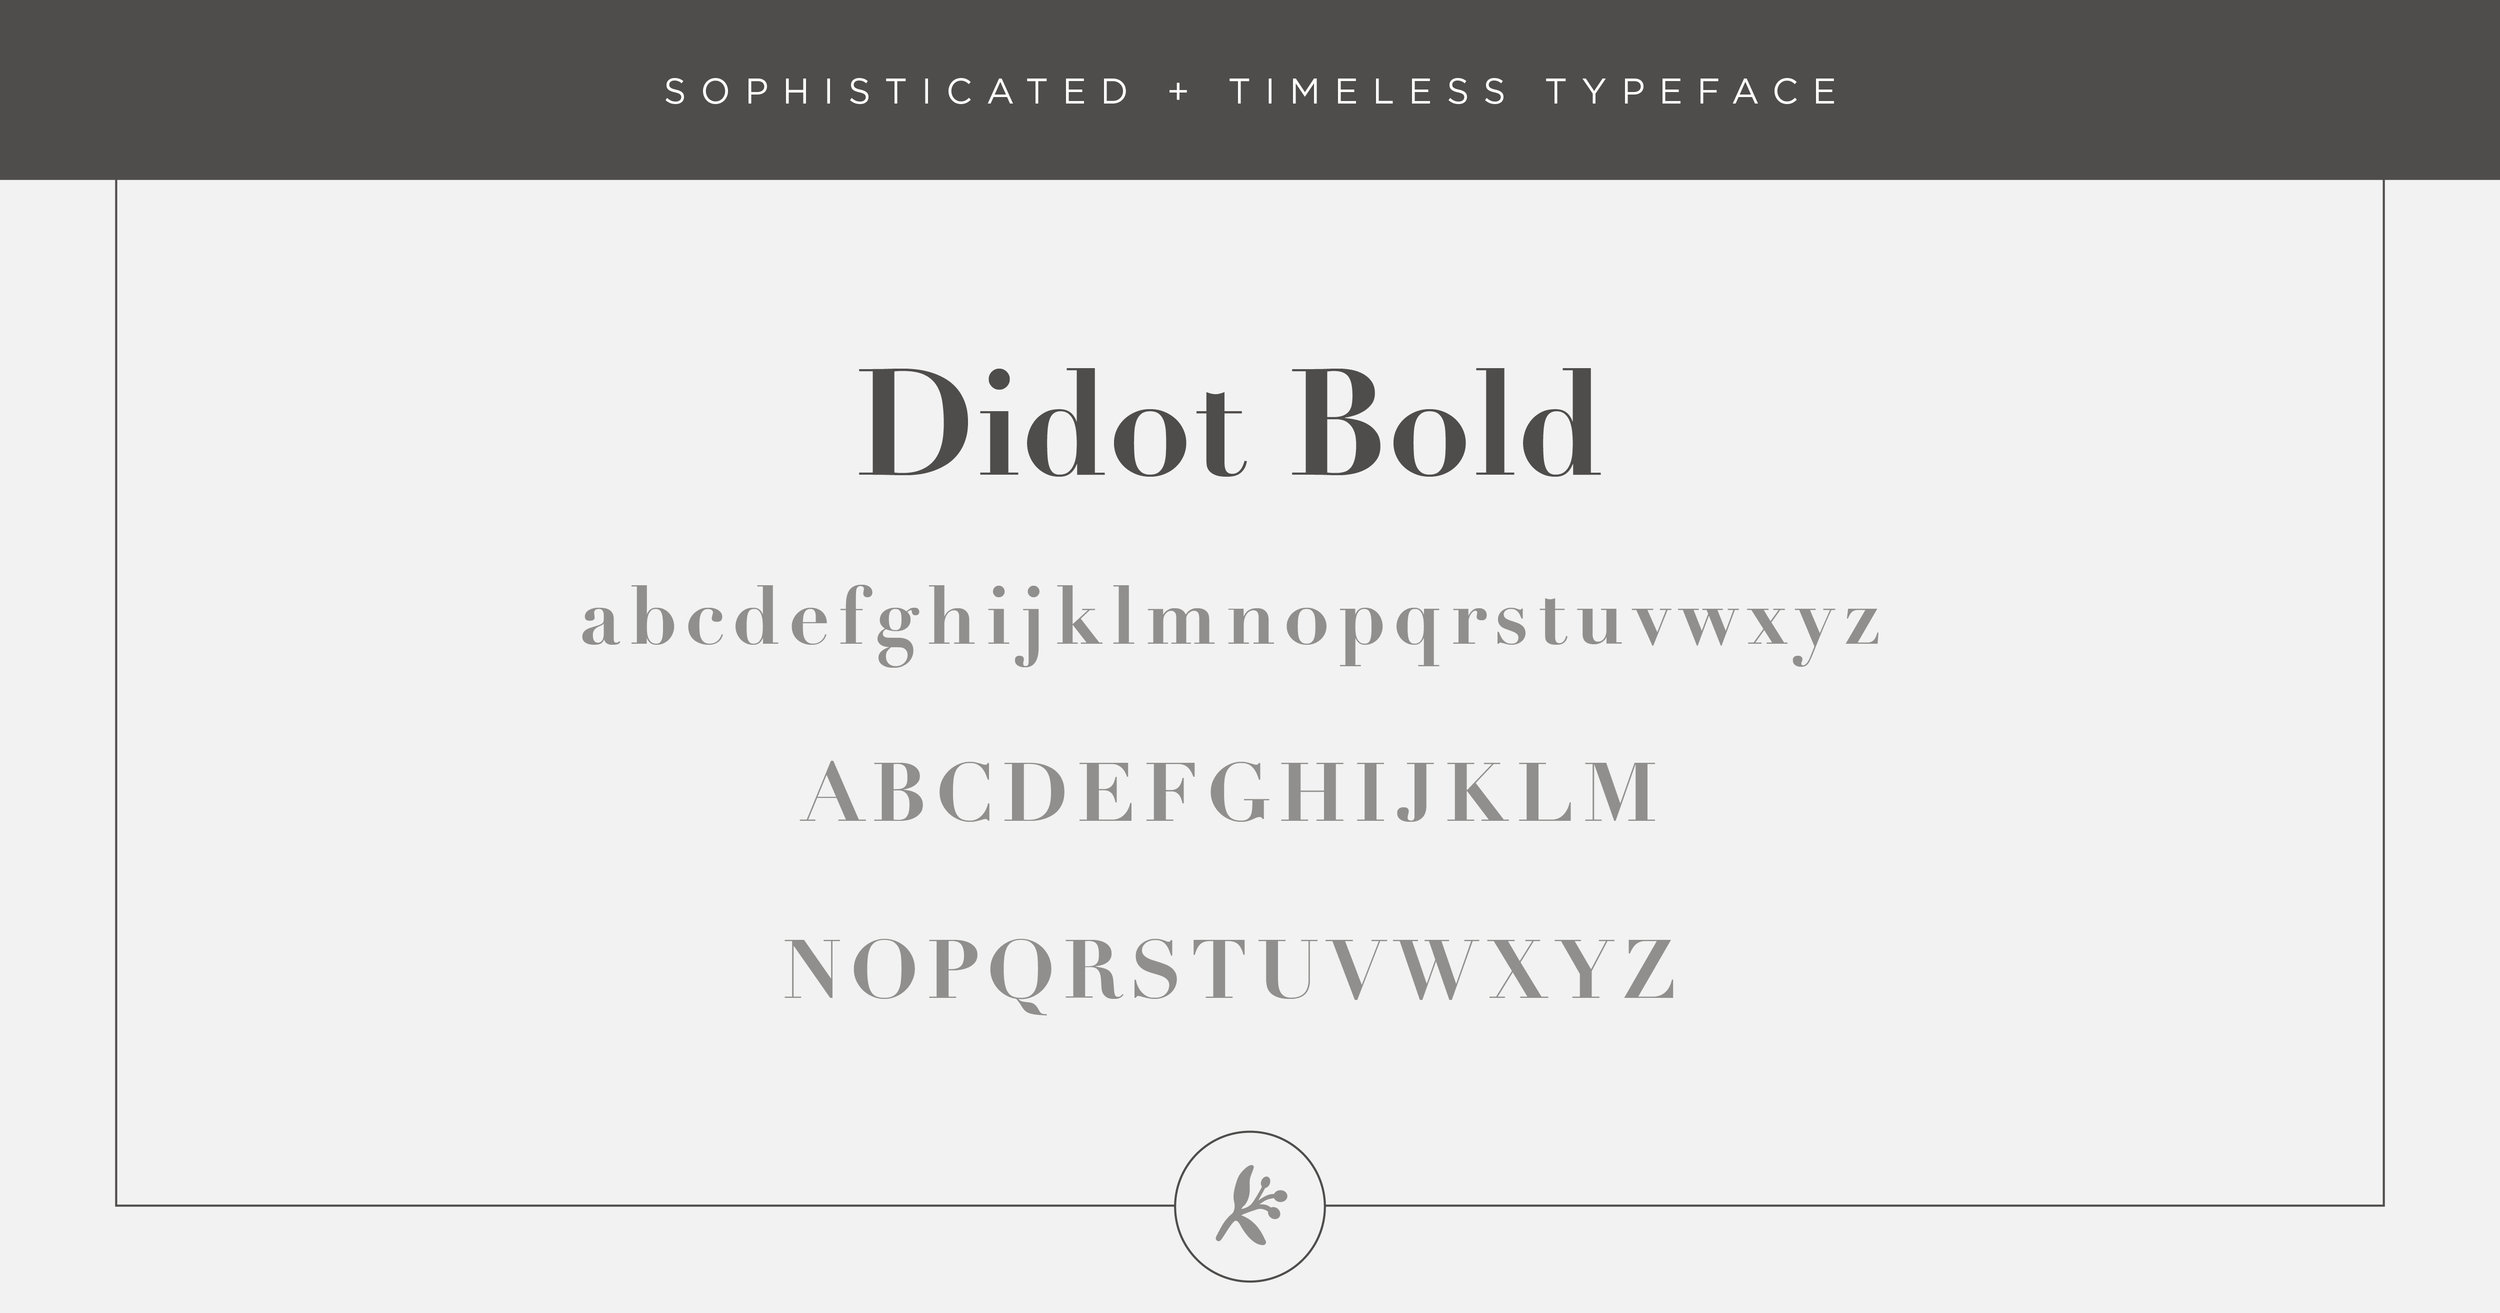 Sophisticated Timeless Typeface